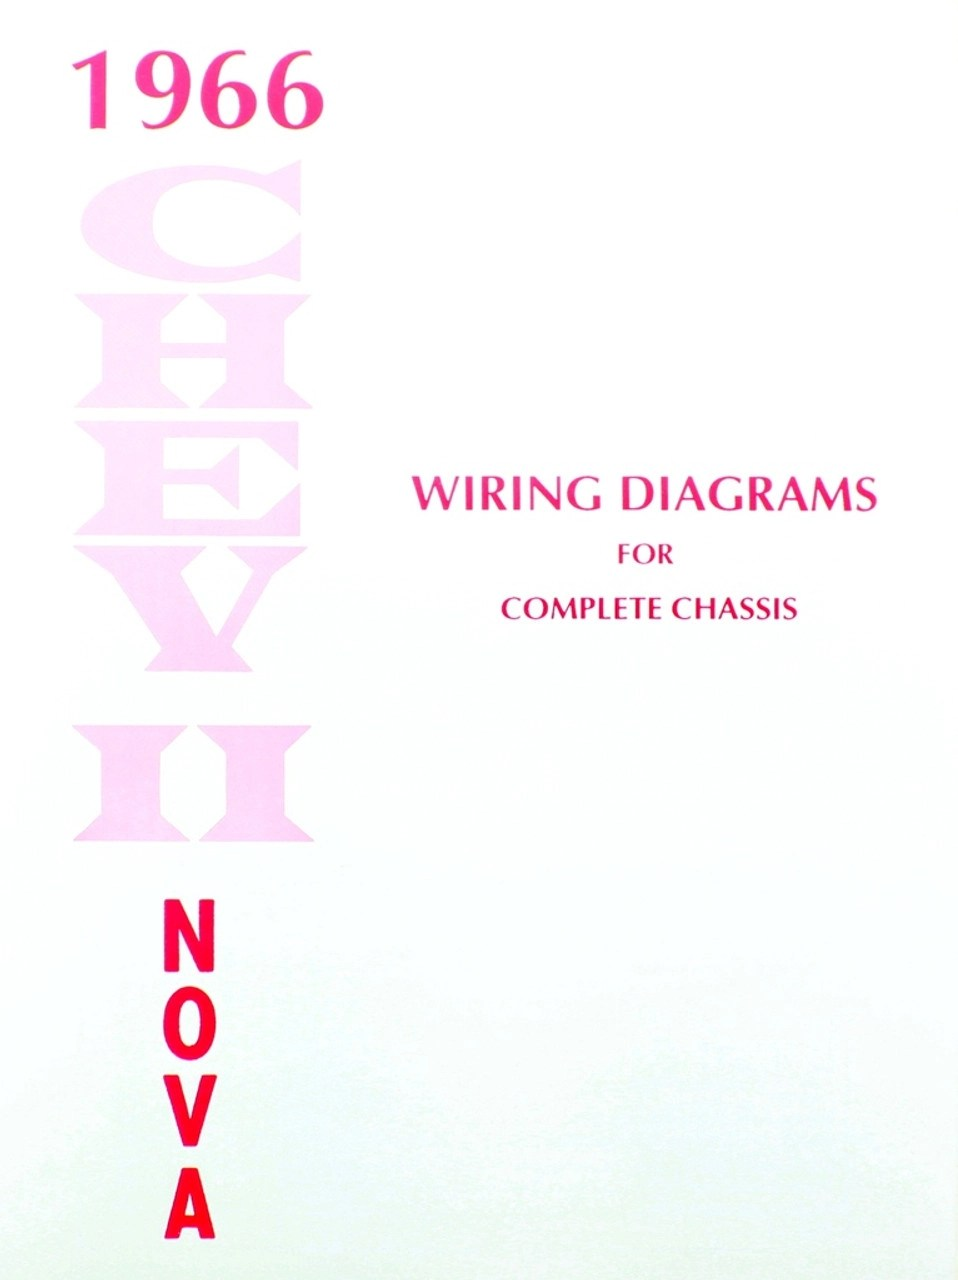 66 Chevy Nova Electrical Wiring Diagram Manual 1966  I5 Classic Chevy